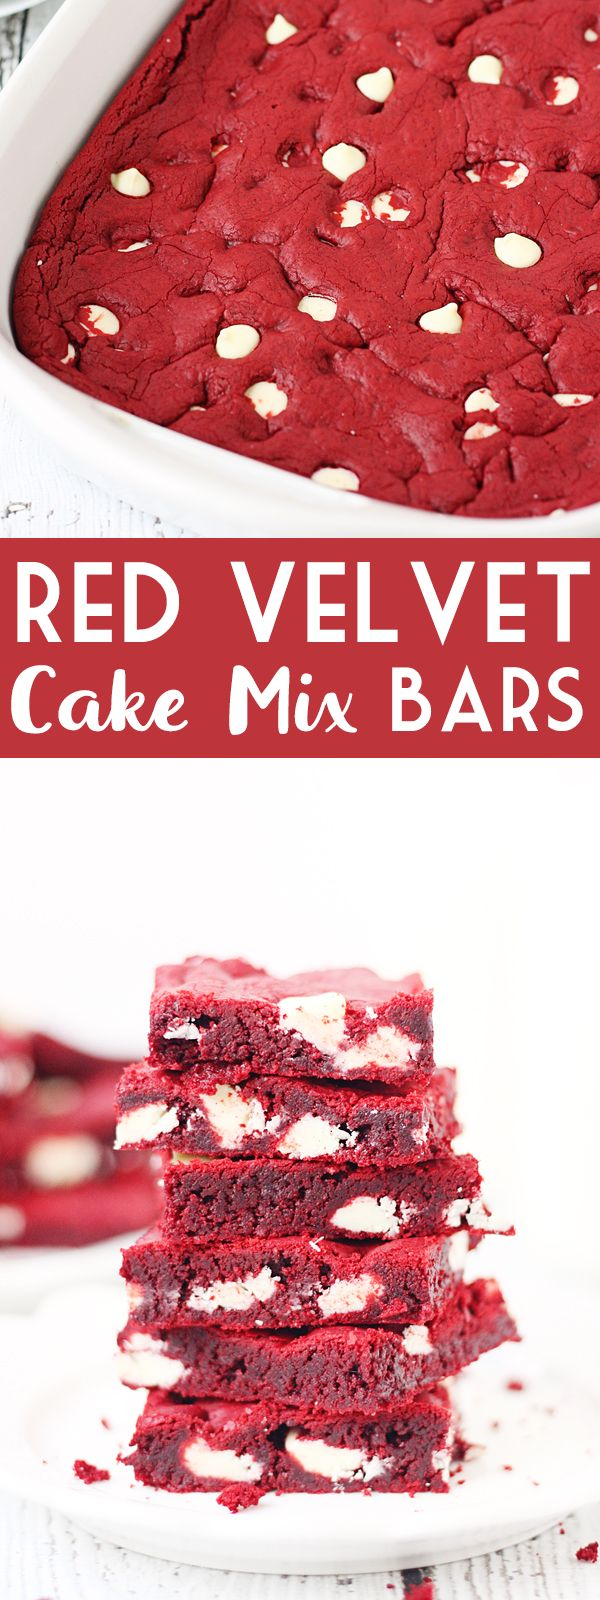 Red Velvet Cake Mix Bars -- Red velvet cake mix bars require only five ingredients and five minutes to throw together. They're soft, chewy and all kinds of white chocolatey Perfect for Valentine's Day! | halfscratched.com #redvelvet #recipe #cookies